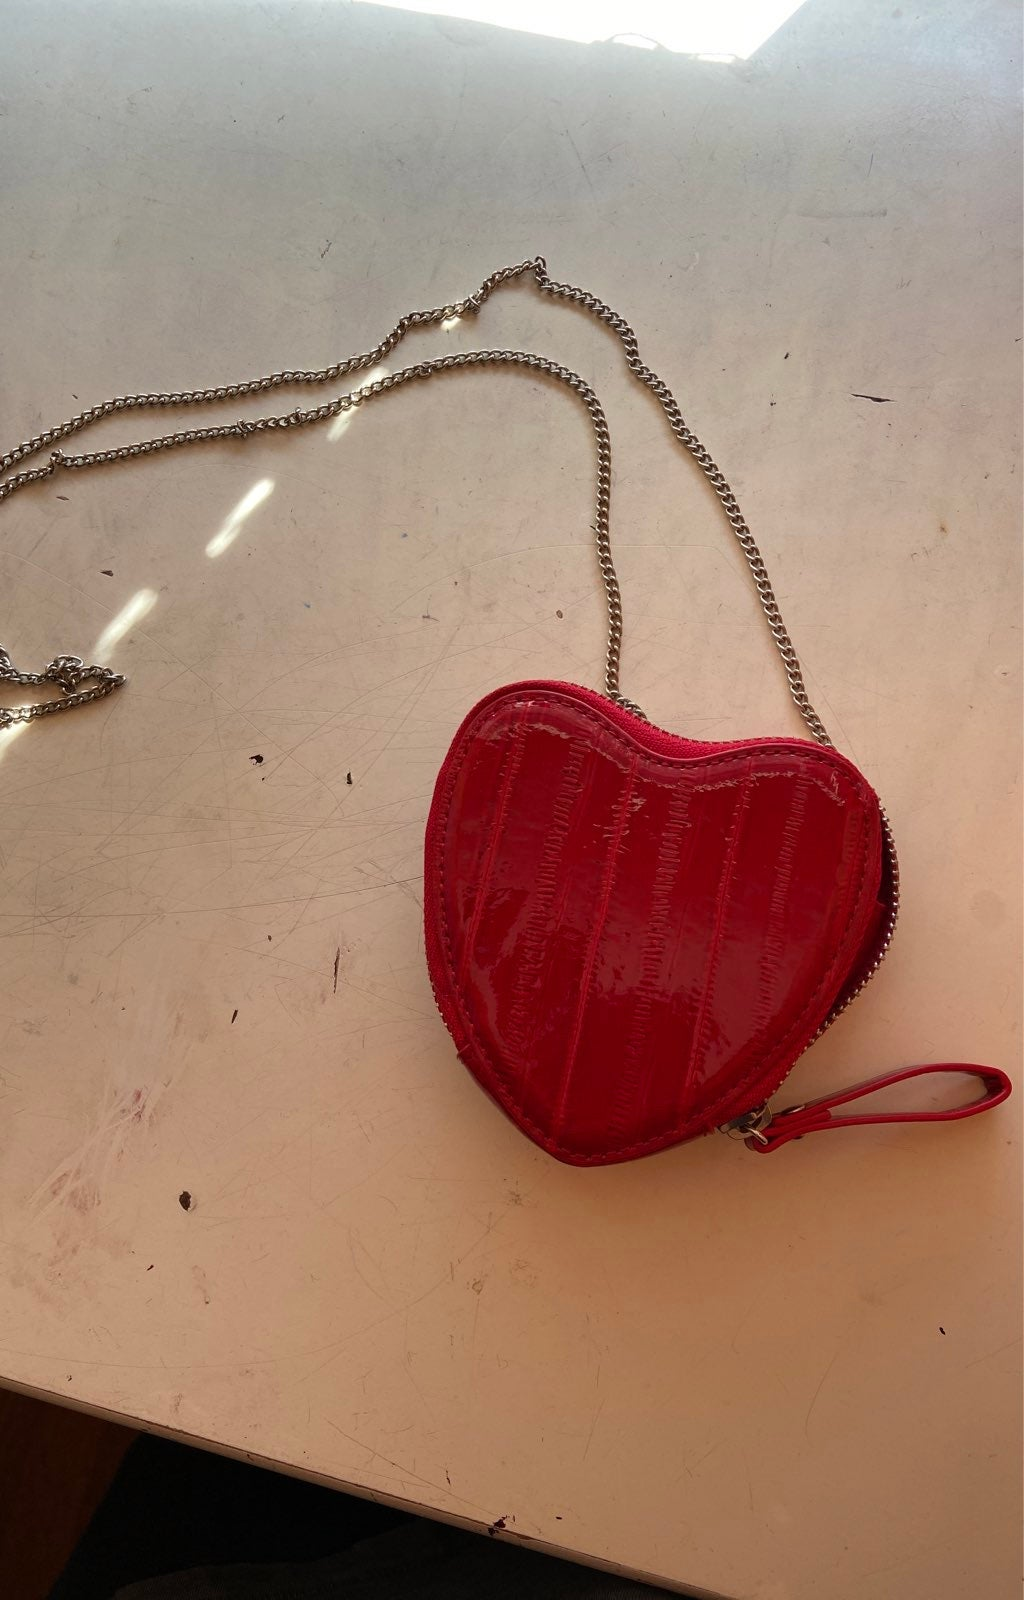 Heart shaped purse from urban outfitters